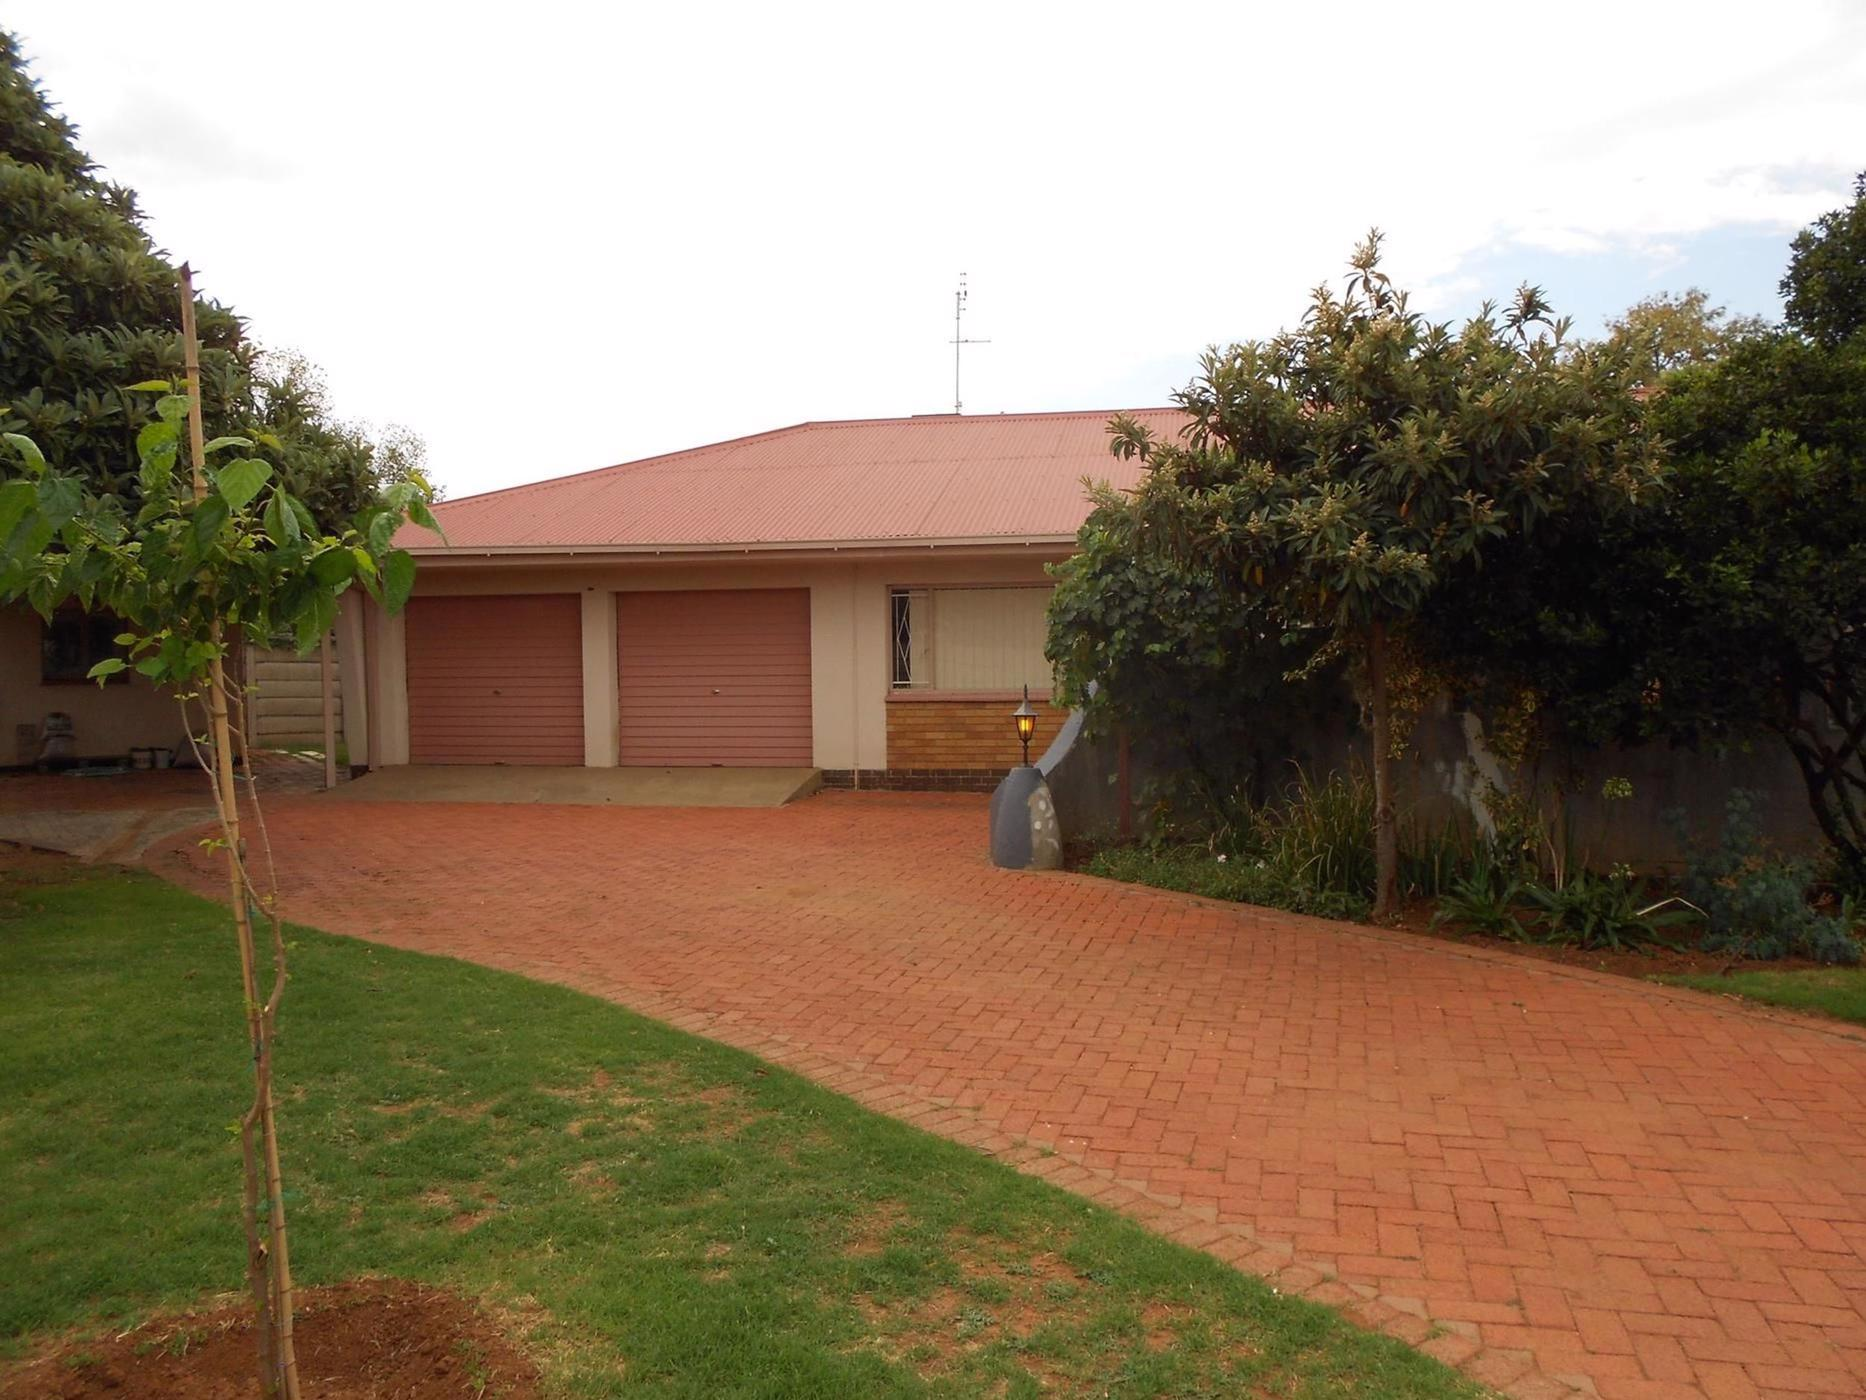 https://listing.pamgolding.co.za/images/properties/201905/1333715/H/1333715_H_1.jpg